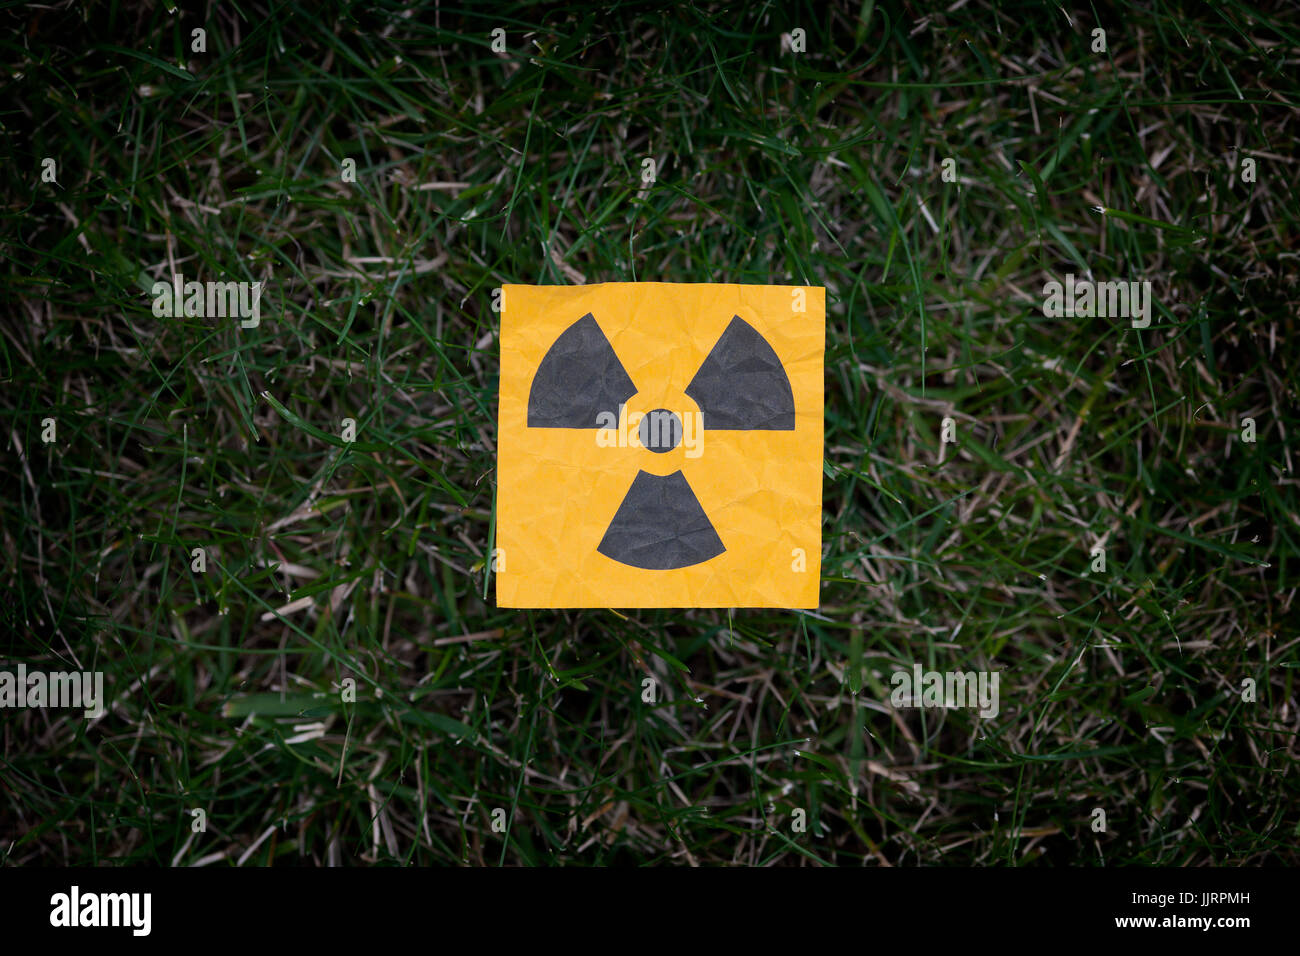 Radiation warning sign on a green grass. - Stock Image